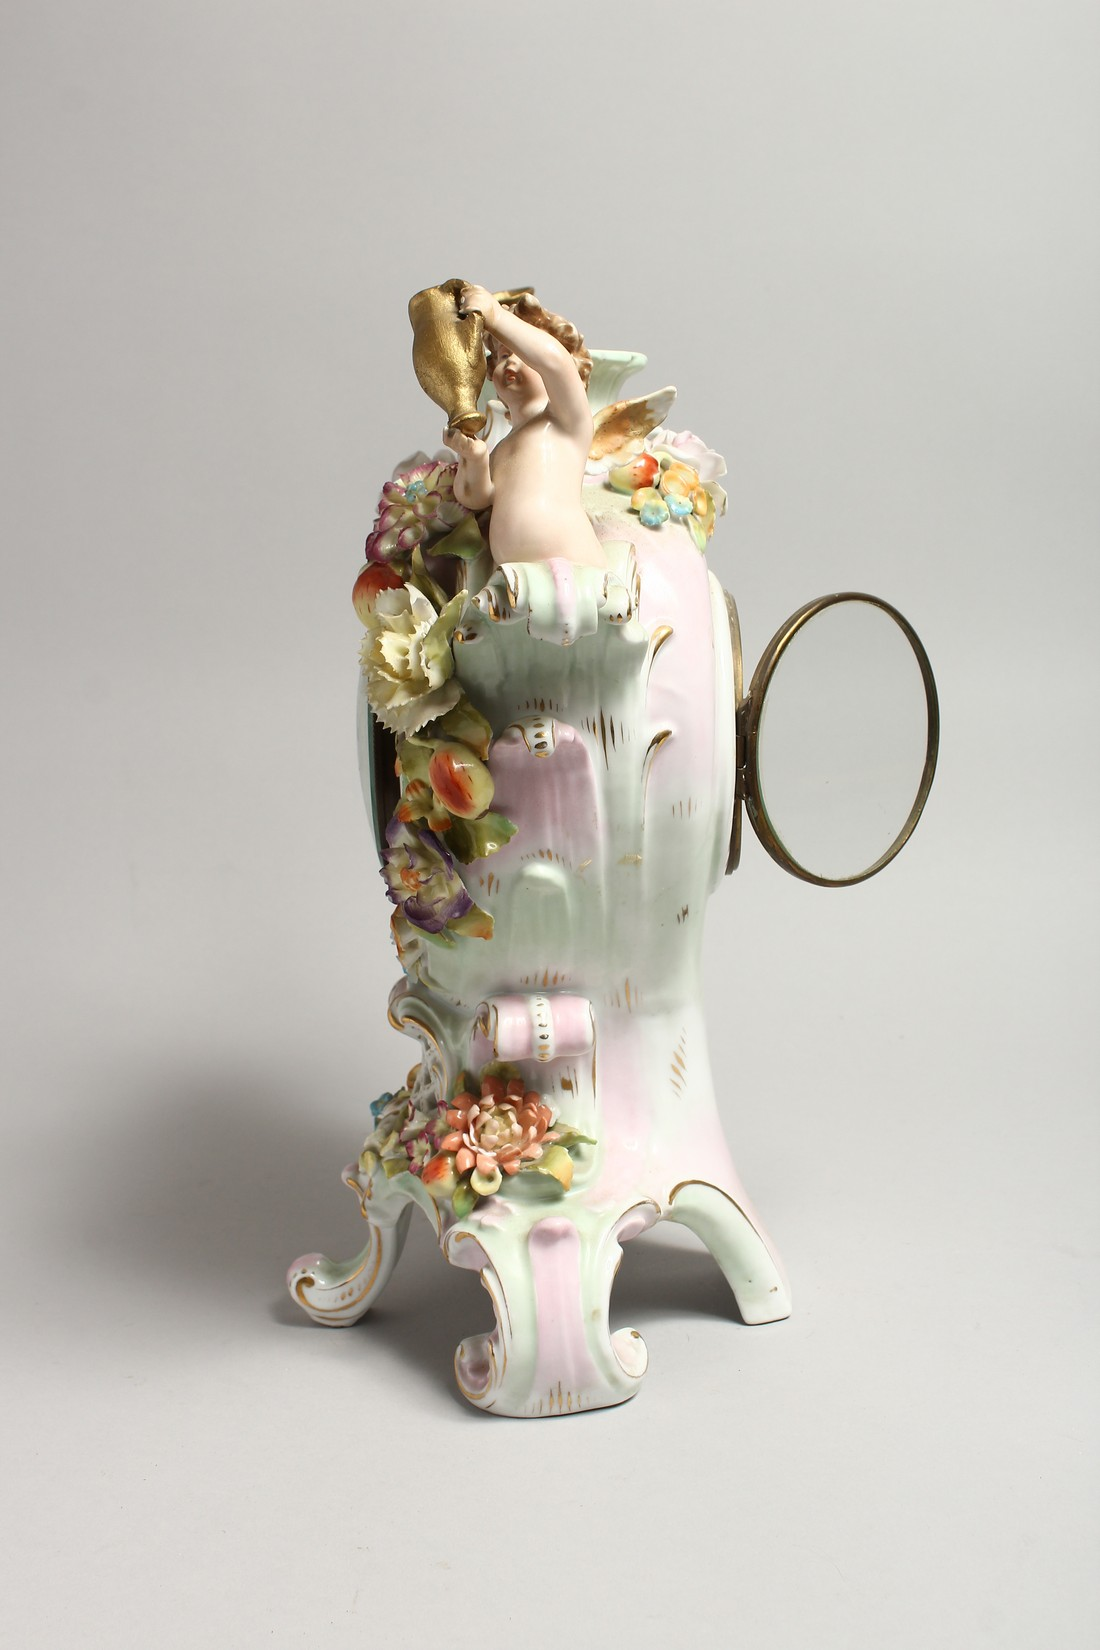 A CONTINENTAL PORCELAIN CUPID AND FLOWER ENCRUSTED CLOCK, with blue and white Roman numerals. - Image 2 of 7